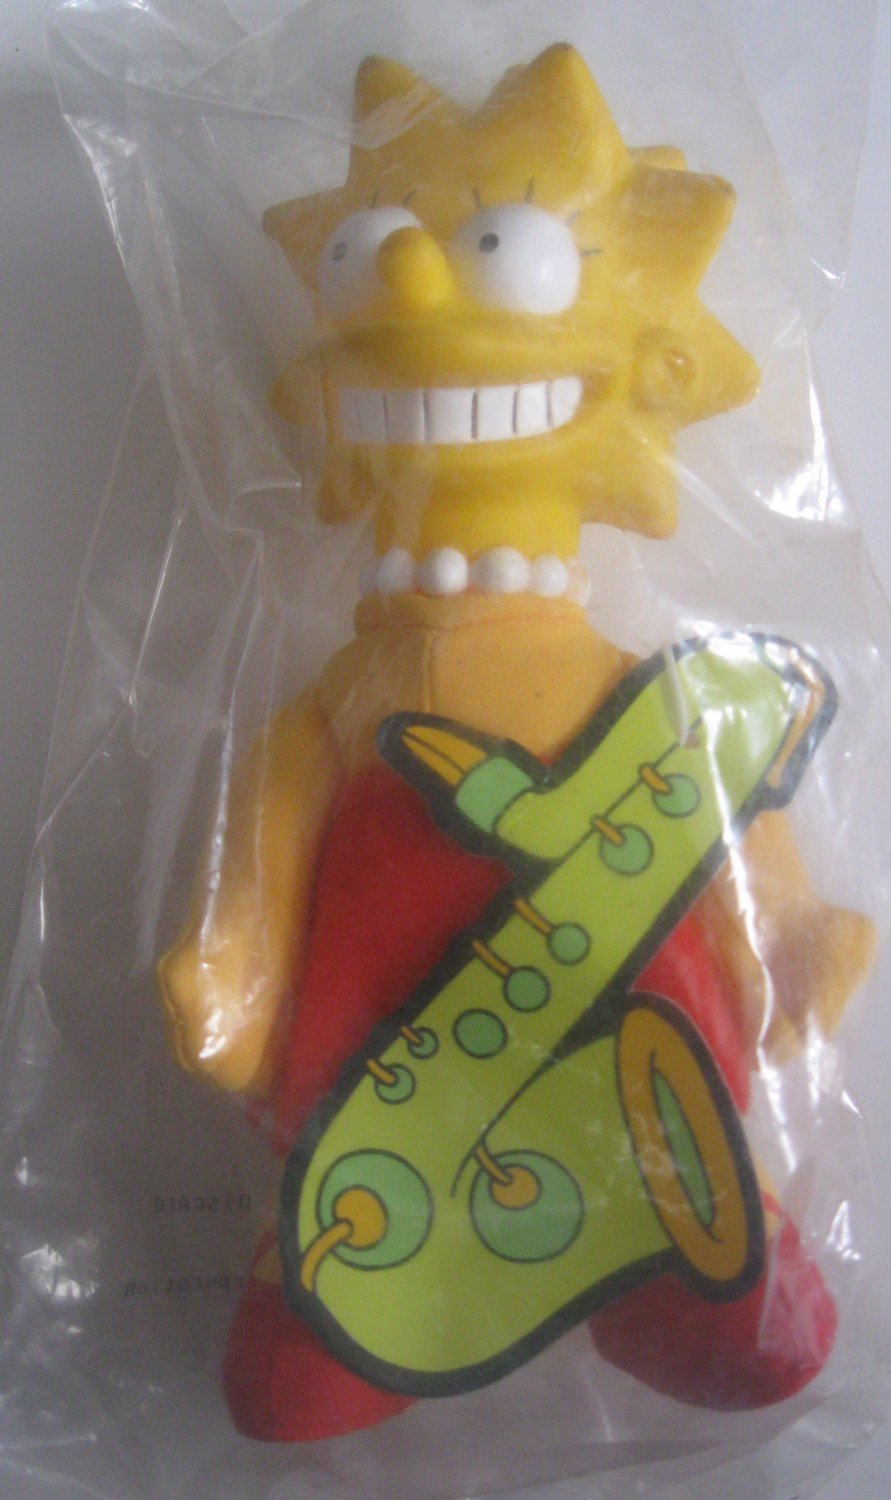 Burger King Kid's Meal Toy - The Simpsons Lisa Simpson Doll Plush with Hard Head 1990